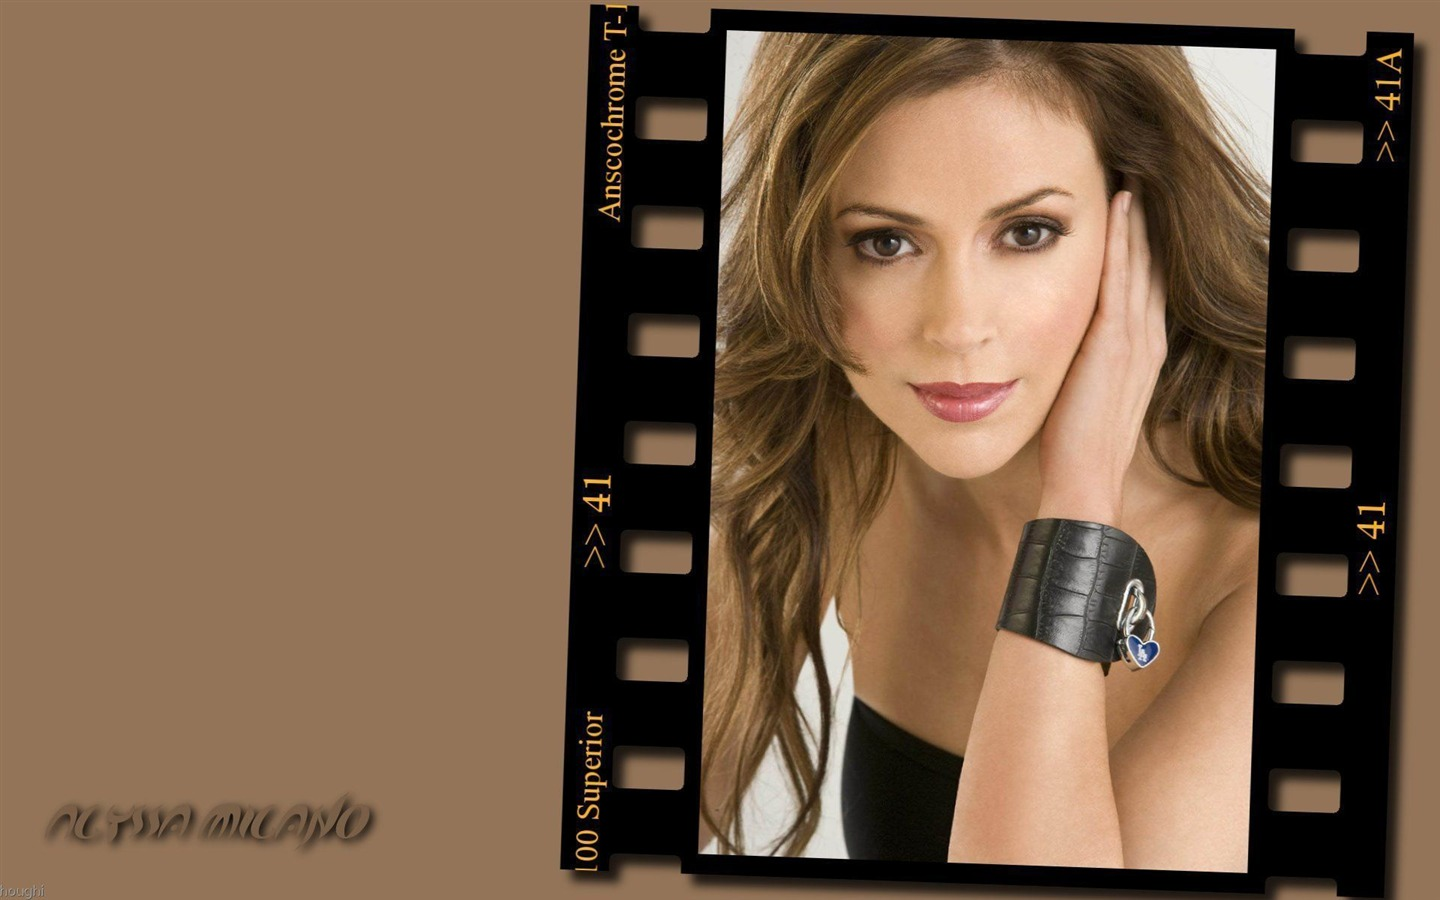 Alyssa Milano #045 - 1440x900 Wallpapers Pictures Photos Images